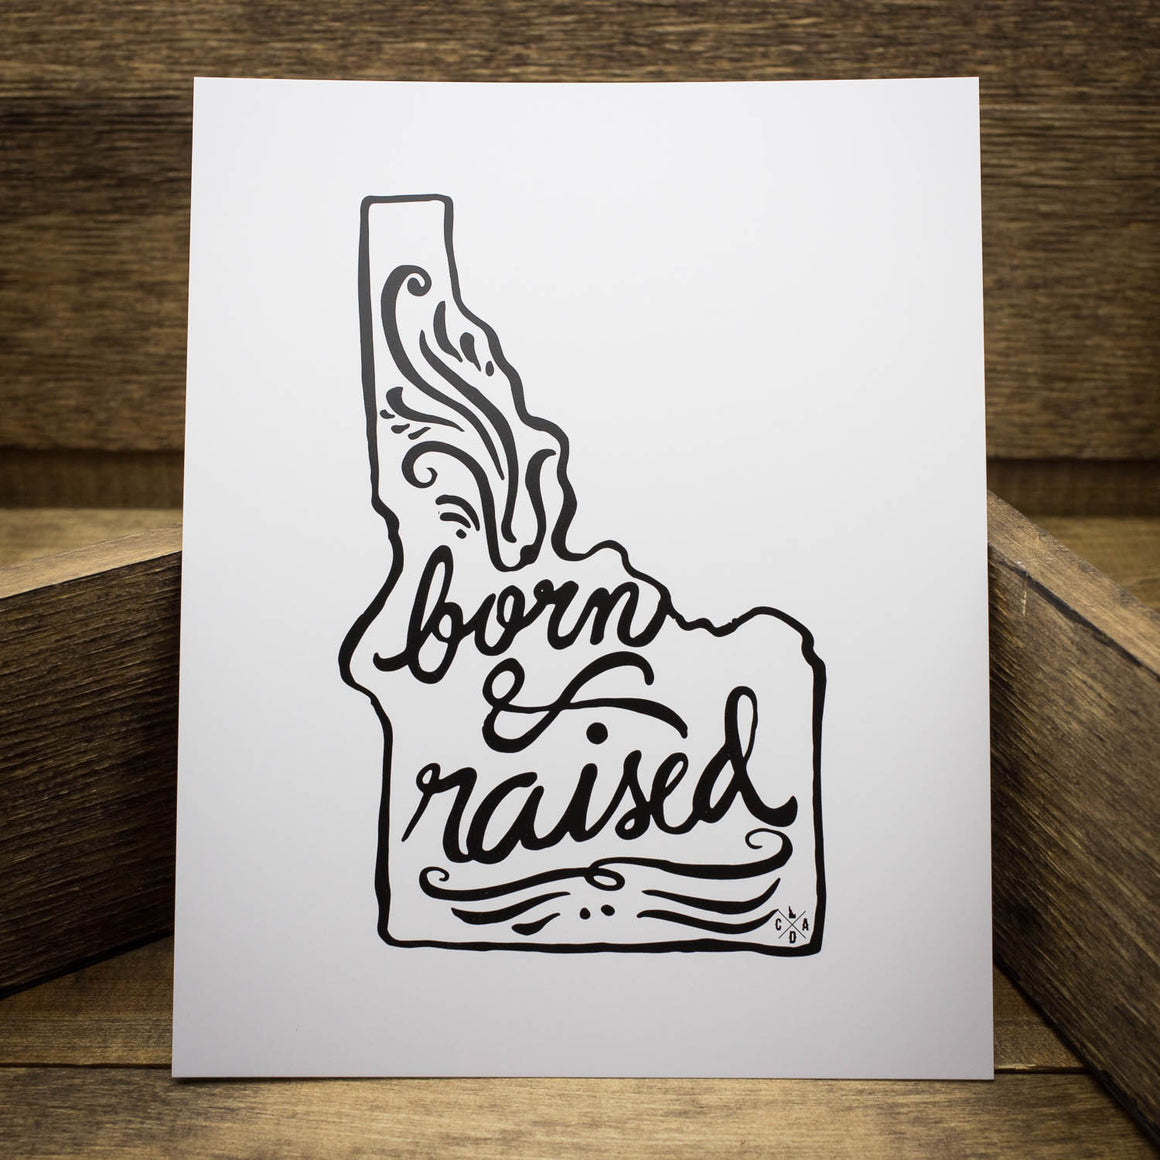 Born and Raised Print